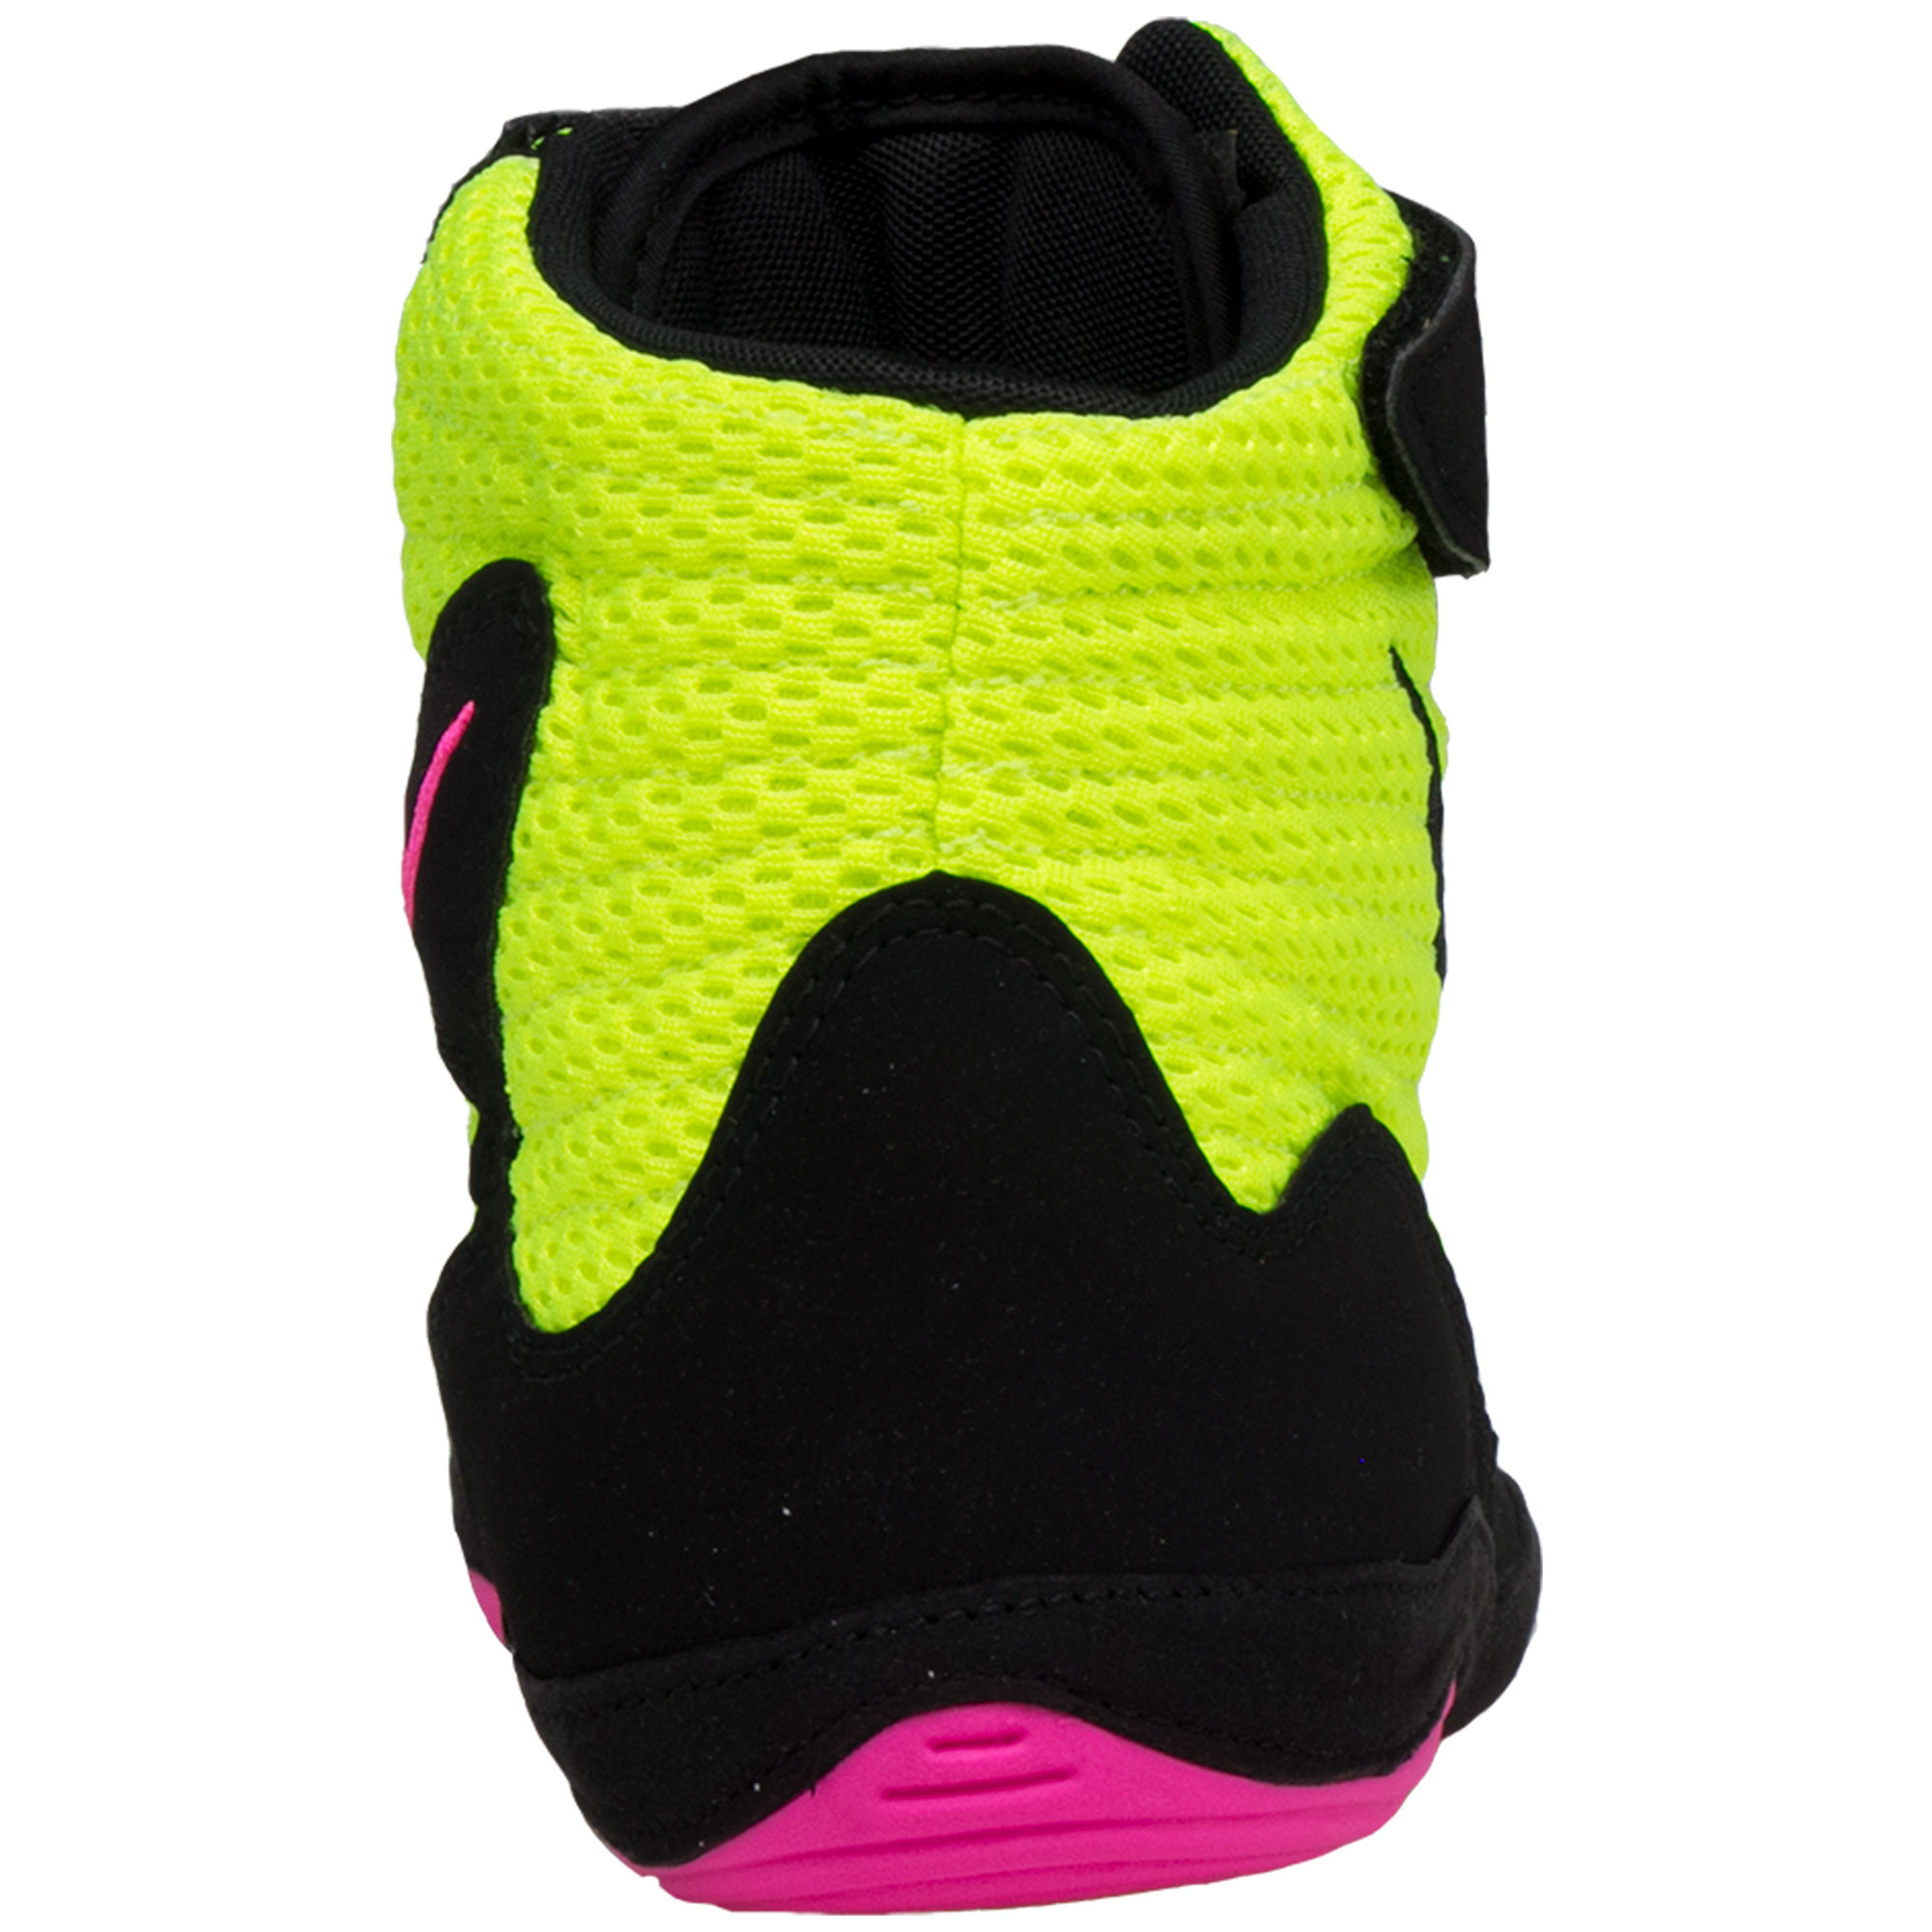 d0d22ba45fd Nike Inflict 3 Unlimited. Ask us a question about this product. Yellow    Pink   Black